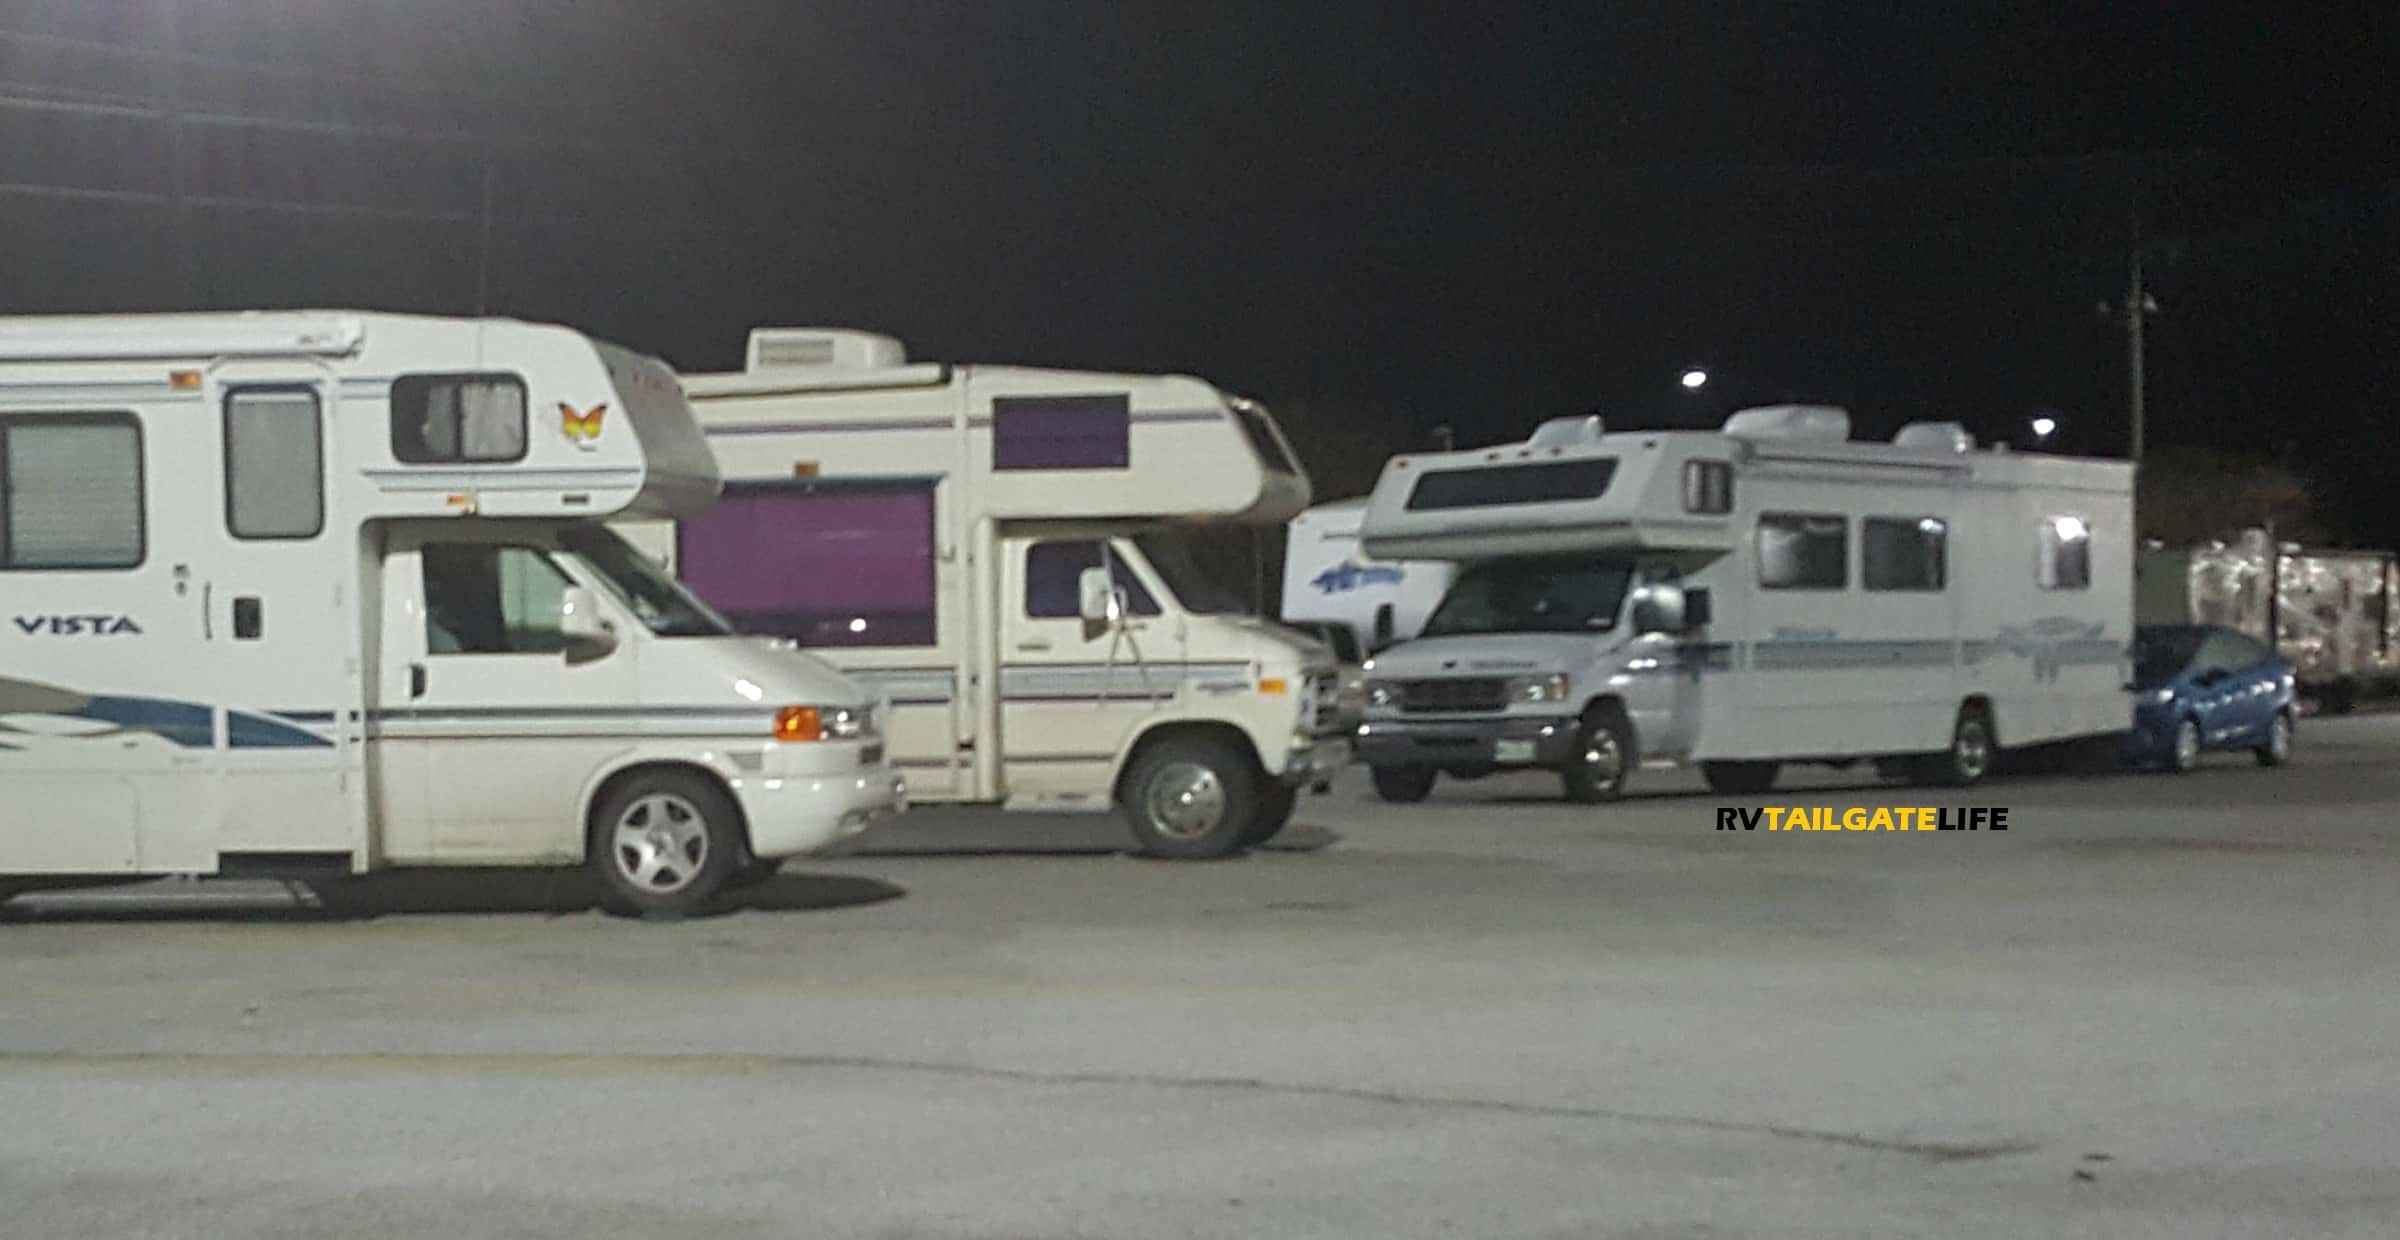 Tips for Overnight RV Parking on a Roadtrip - RV Tailgate Life